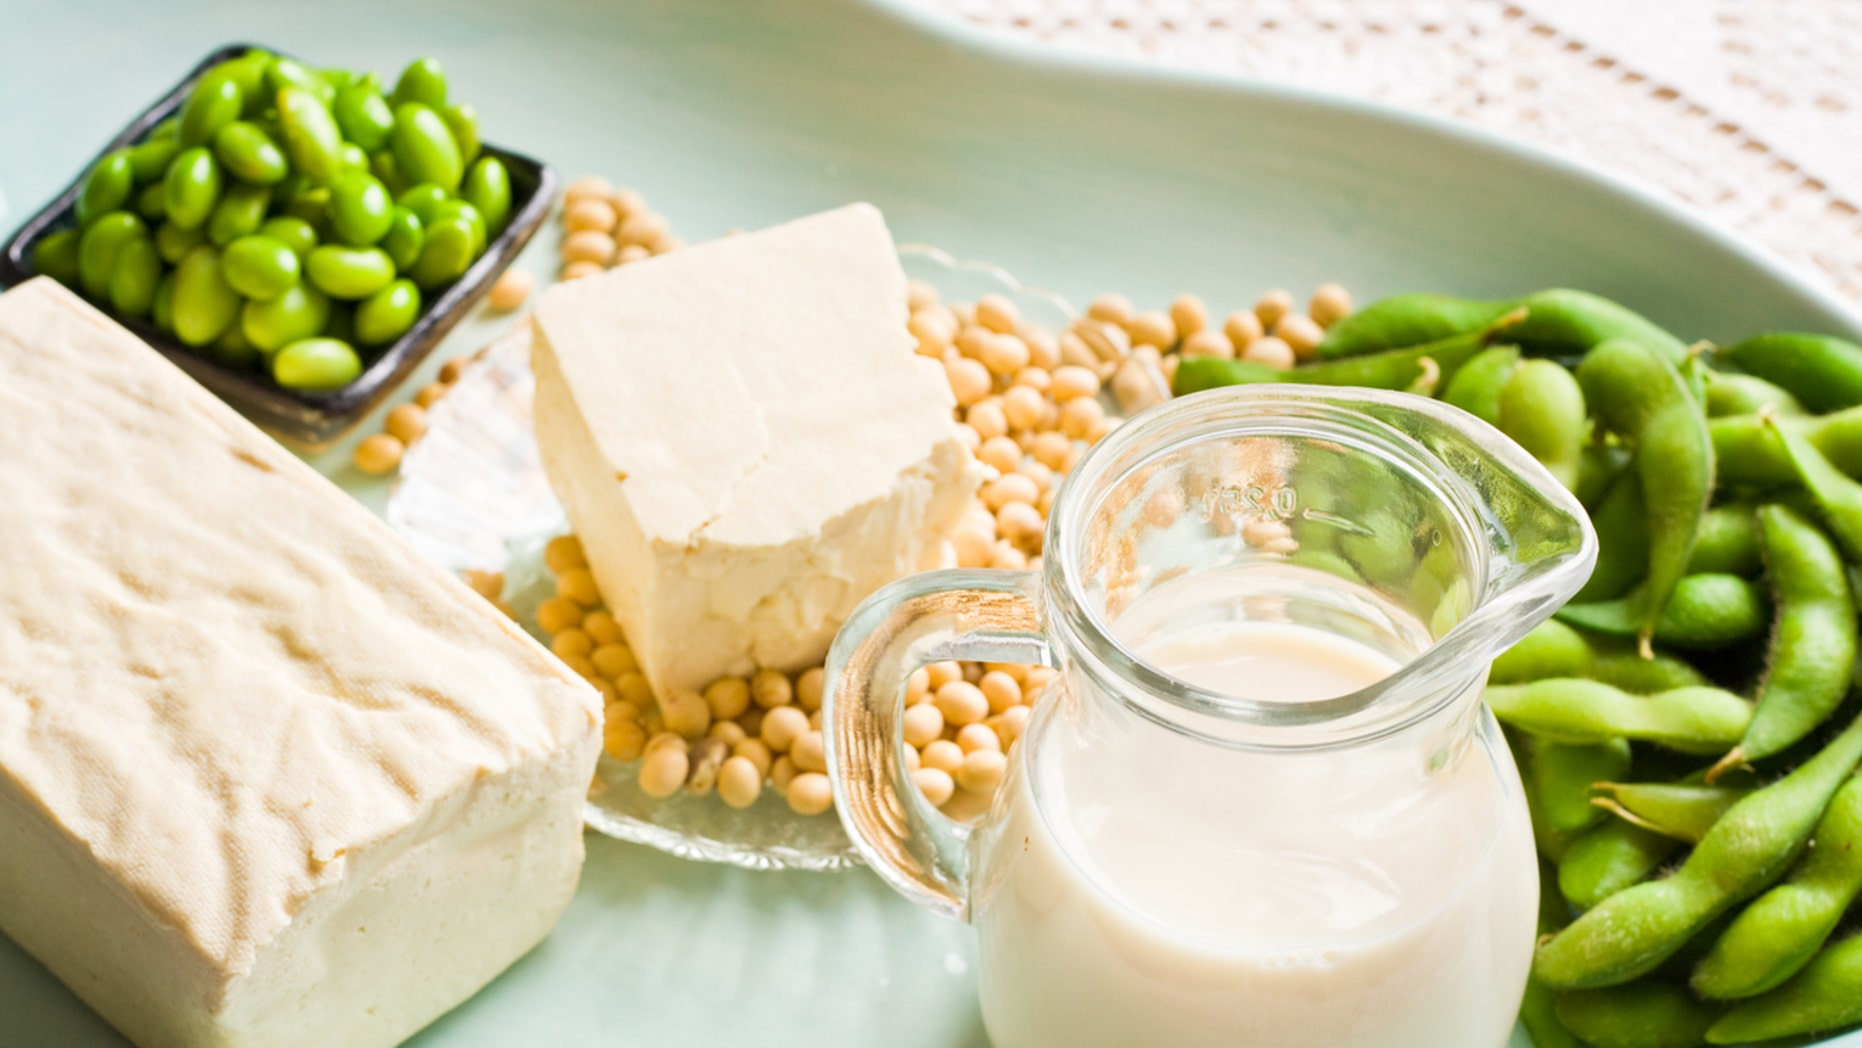 A variety of soy milk and soybean products. They are sitting in a soft aqua colored tray. There is a brick of firm tofu and a small pitcher of soy milk. On the right are some green soy beans and in back there is a small dish of shelled soybeans.